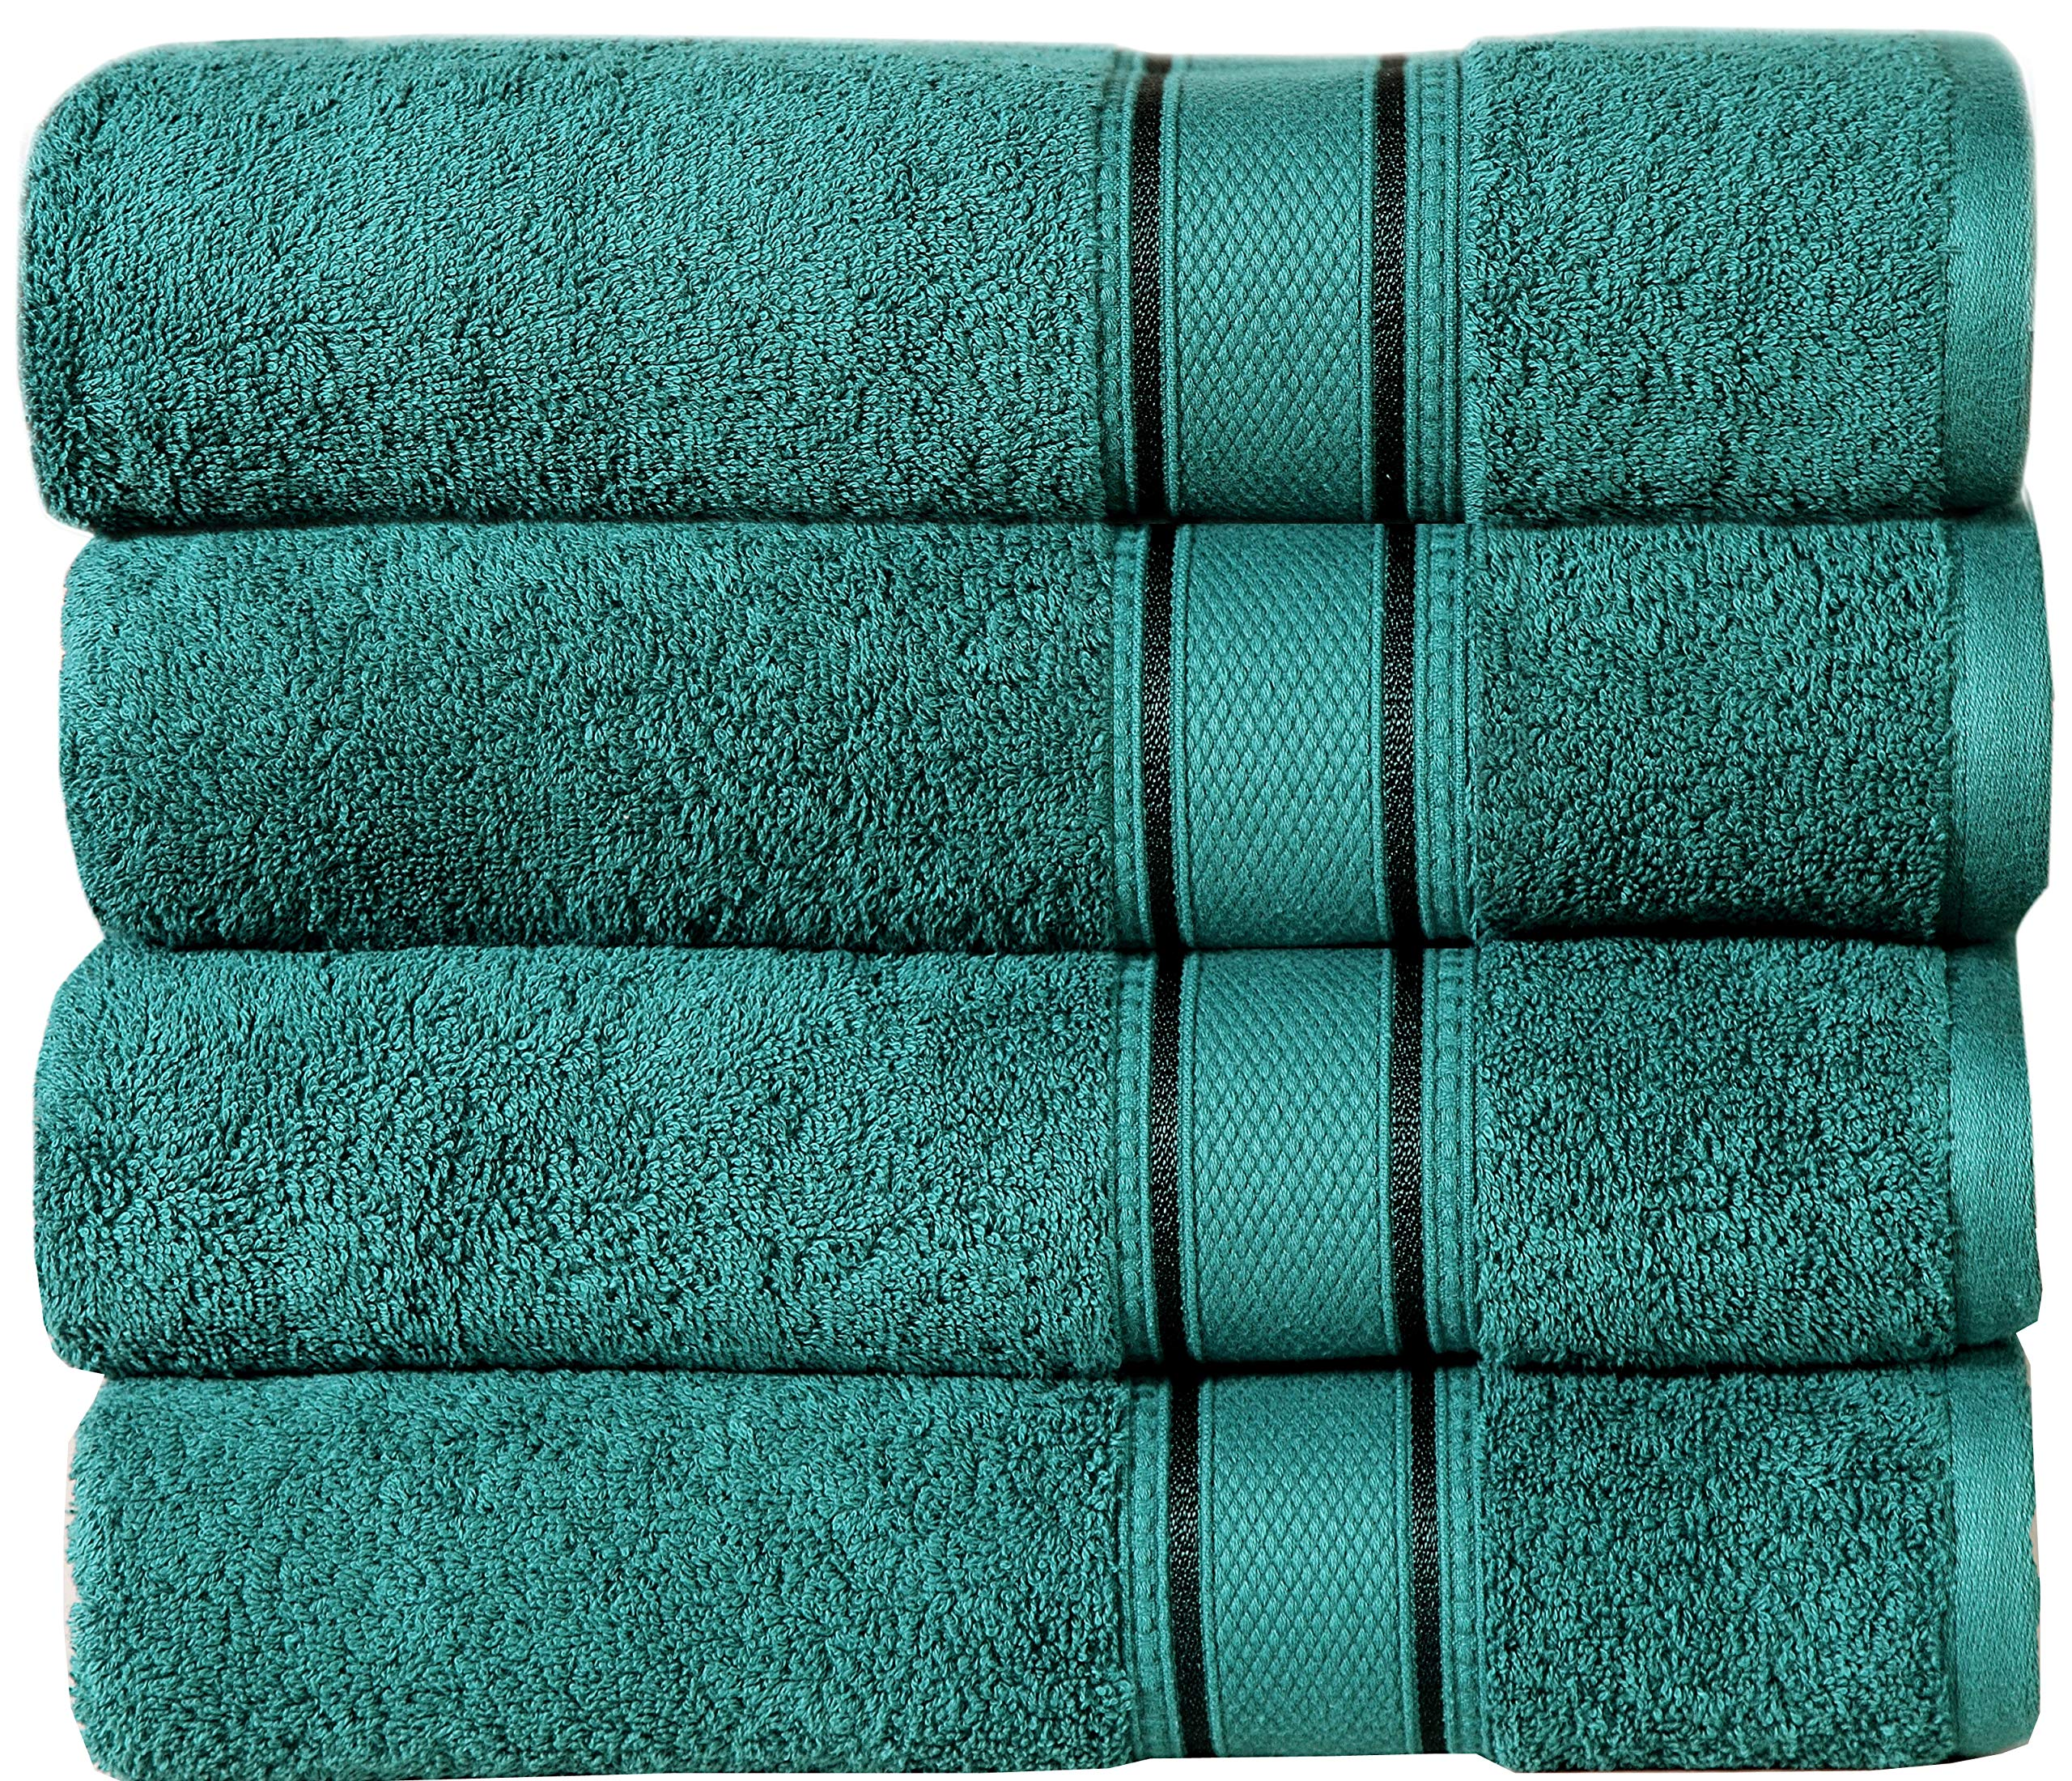 Linen Clubs Bath Towel Extra Large,Bath Towel Absorbent,Bath Towel Made of 100% Combed Ring Spun Cotton,Luxrious Customized Border Bath Towel .Set of 4 Teal Color,Size 30x54 GSM-580 - Set Contains - 4 Ultra Soft Oversized Bath Towels 30x54 inch. COLOR-TEAL. LONG-STAPLE COMBED COTTON. Superior's 100% Premium Long-Staple Cotton is specially combed to remove all but the finest and longest fibers, making these towels the ultimate in luxury. Thirstier than Turkish cotton and softer and more durable than standard cotton, our longer fibers can be spun thinner, which increases the comfort and absorbency of these towels Brilliant intense vibrant colors, highly functional and durable, easy care machine wash. These bath Towels will last you a long time. - bathroom-linens, bathroom, bath-towels - A1yEhy6ZtVL -